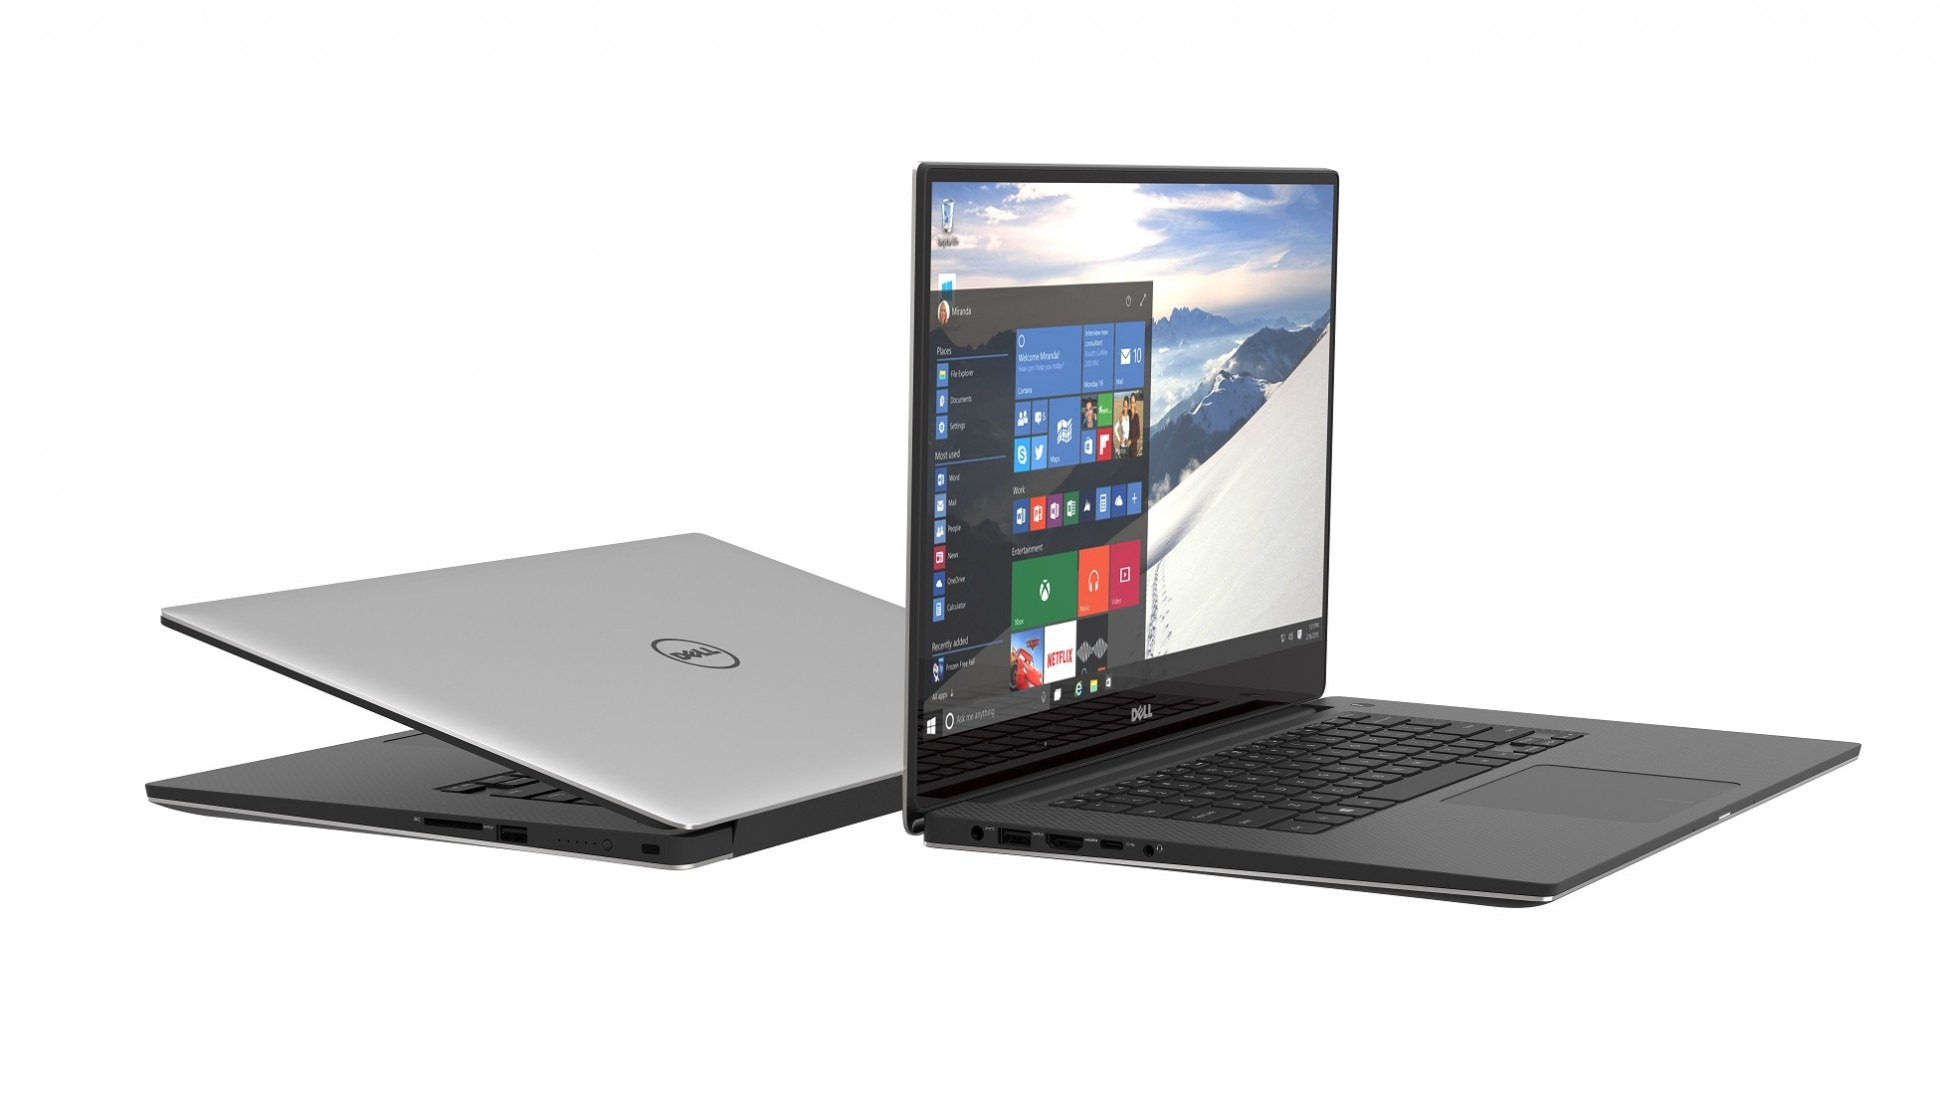 Dell S New Xps 15 Finally Goes On Sale With Shipments To